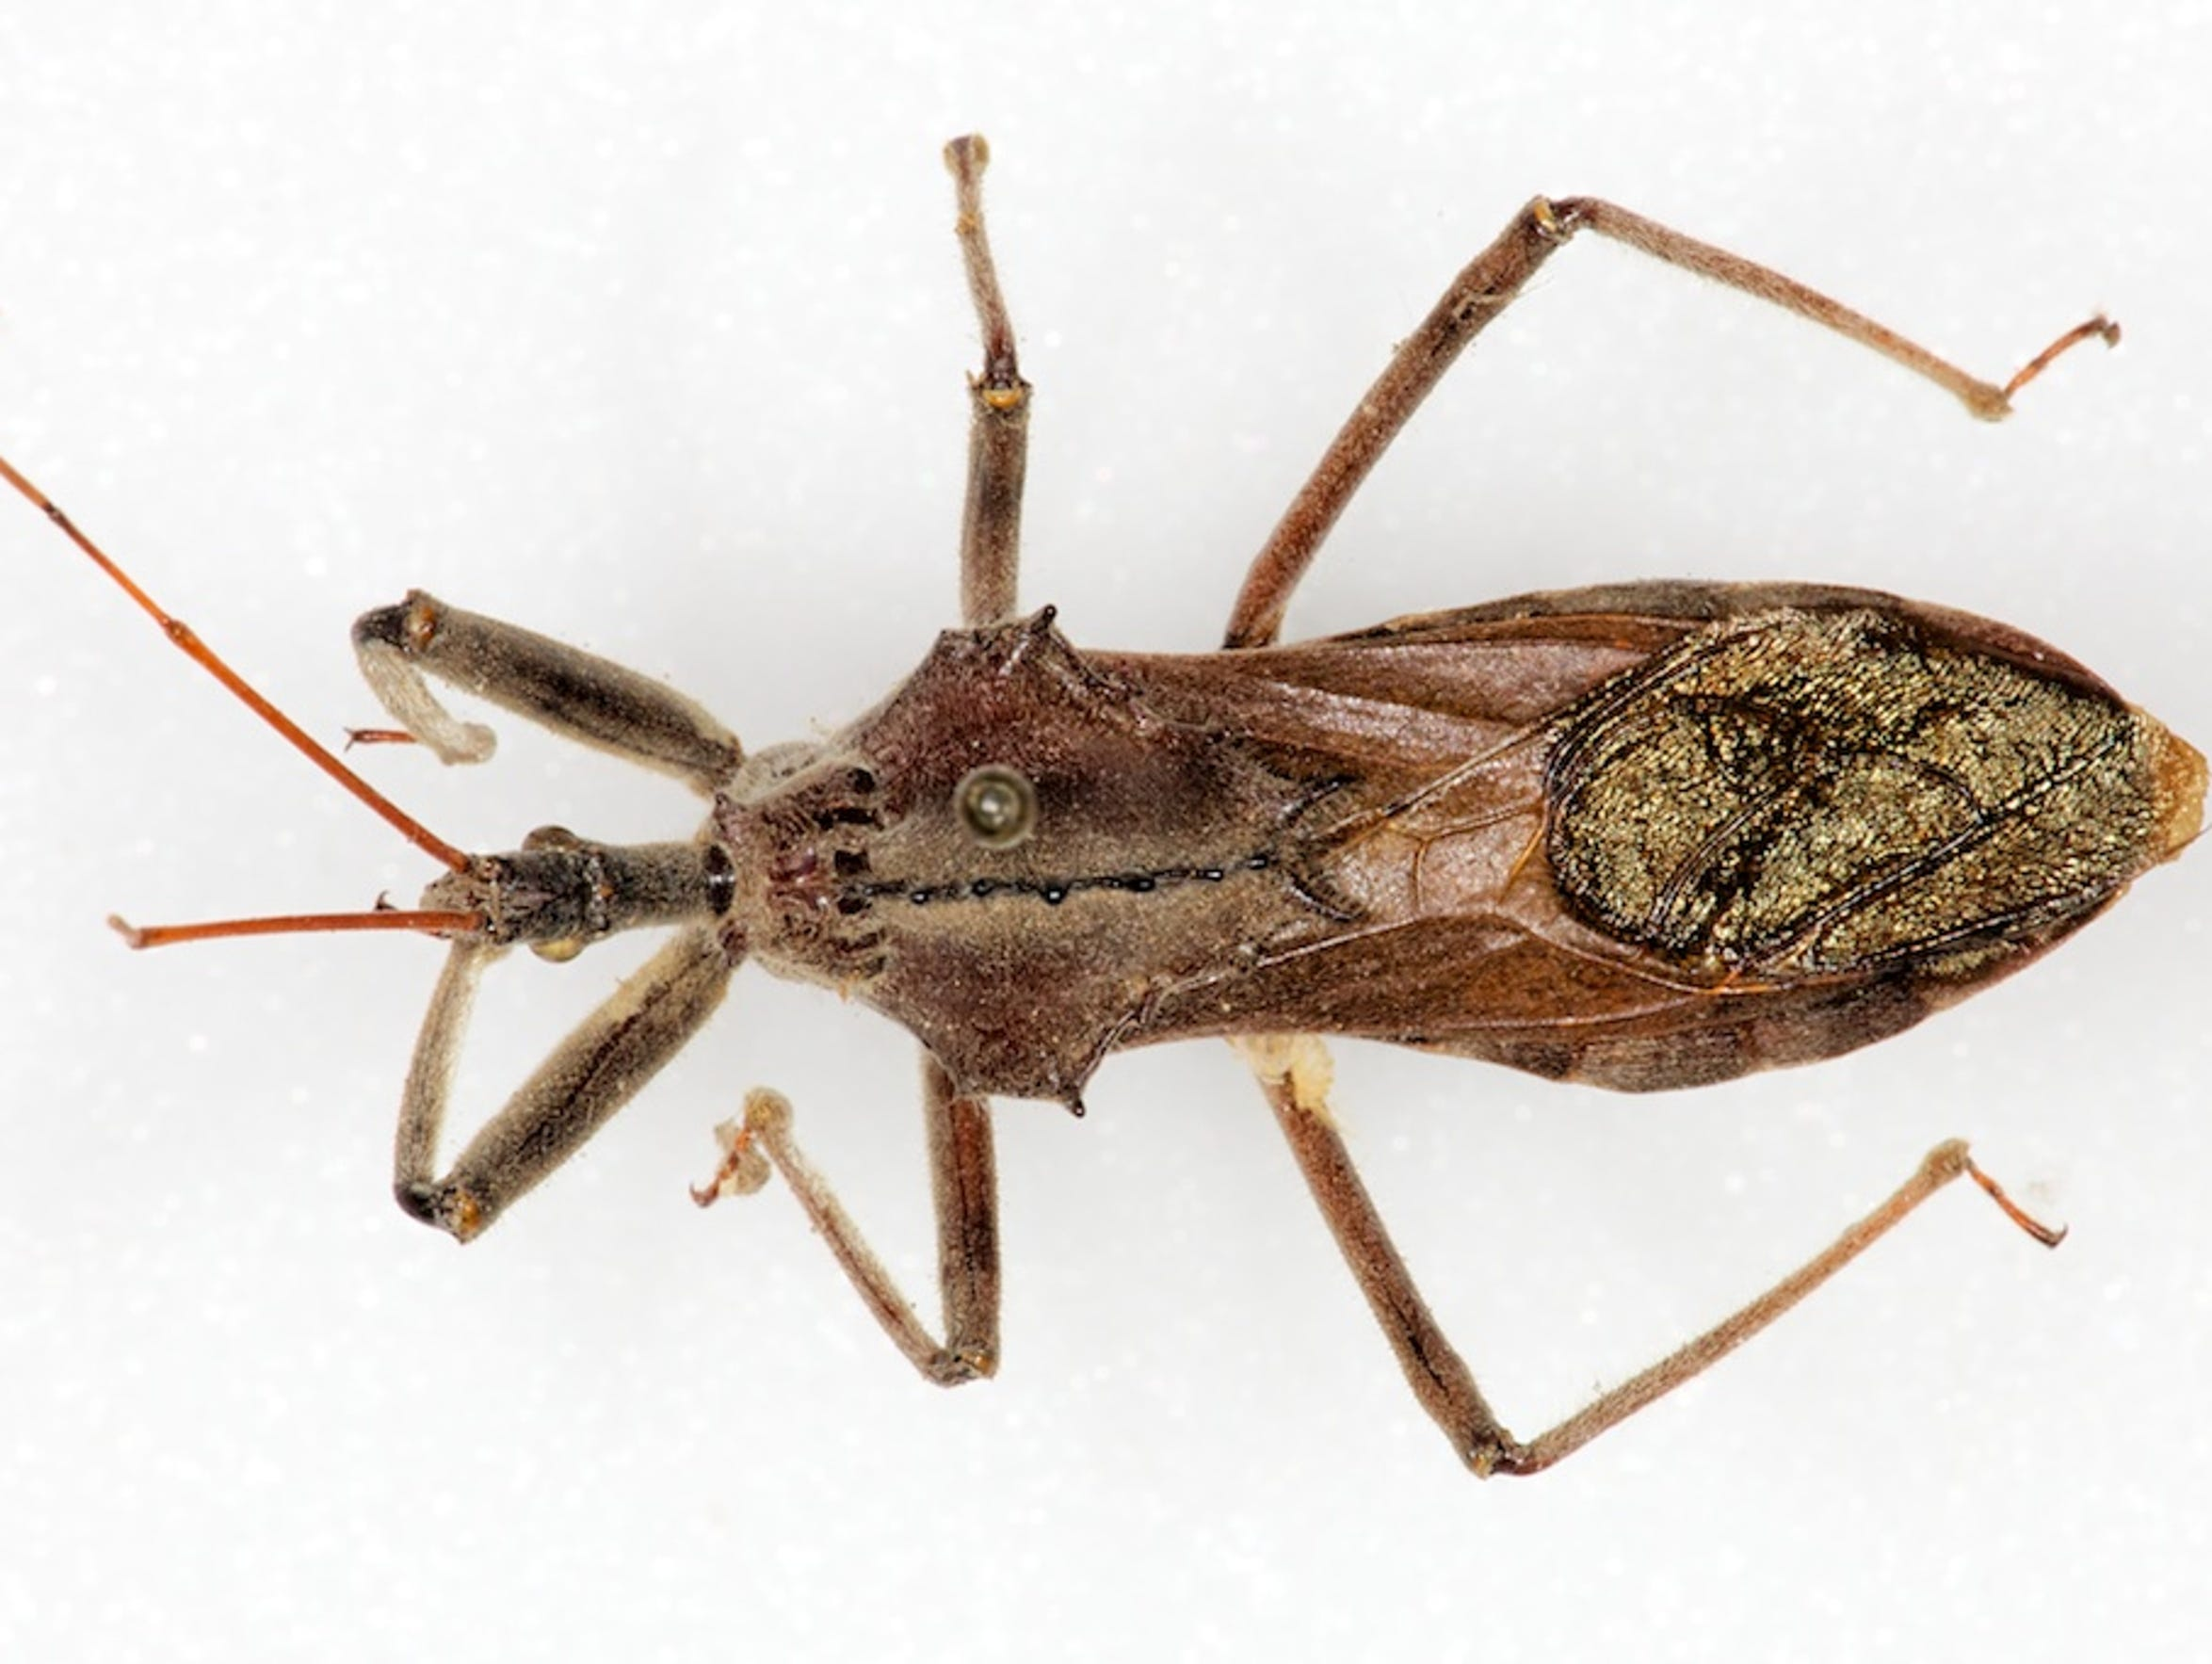 Texas is home to many bugs that look similar to the